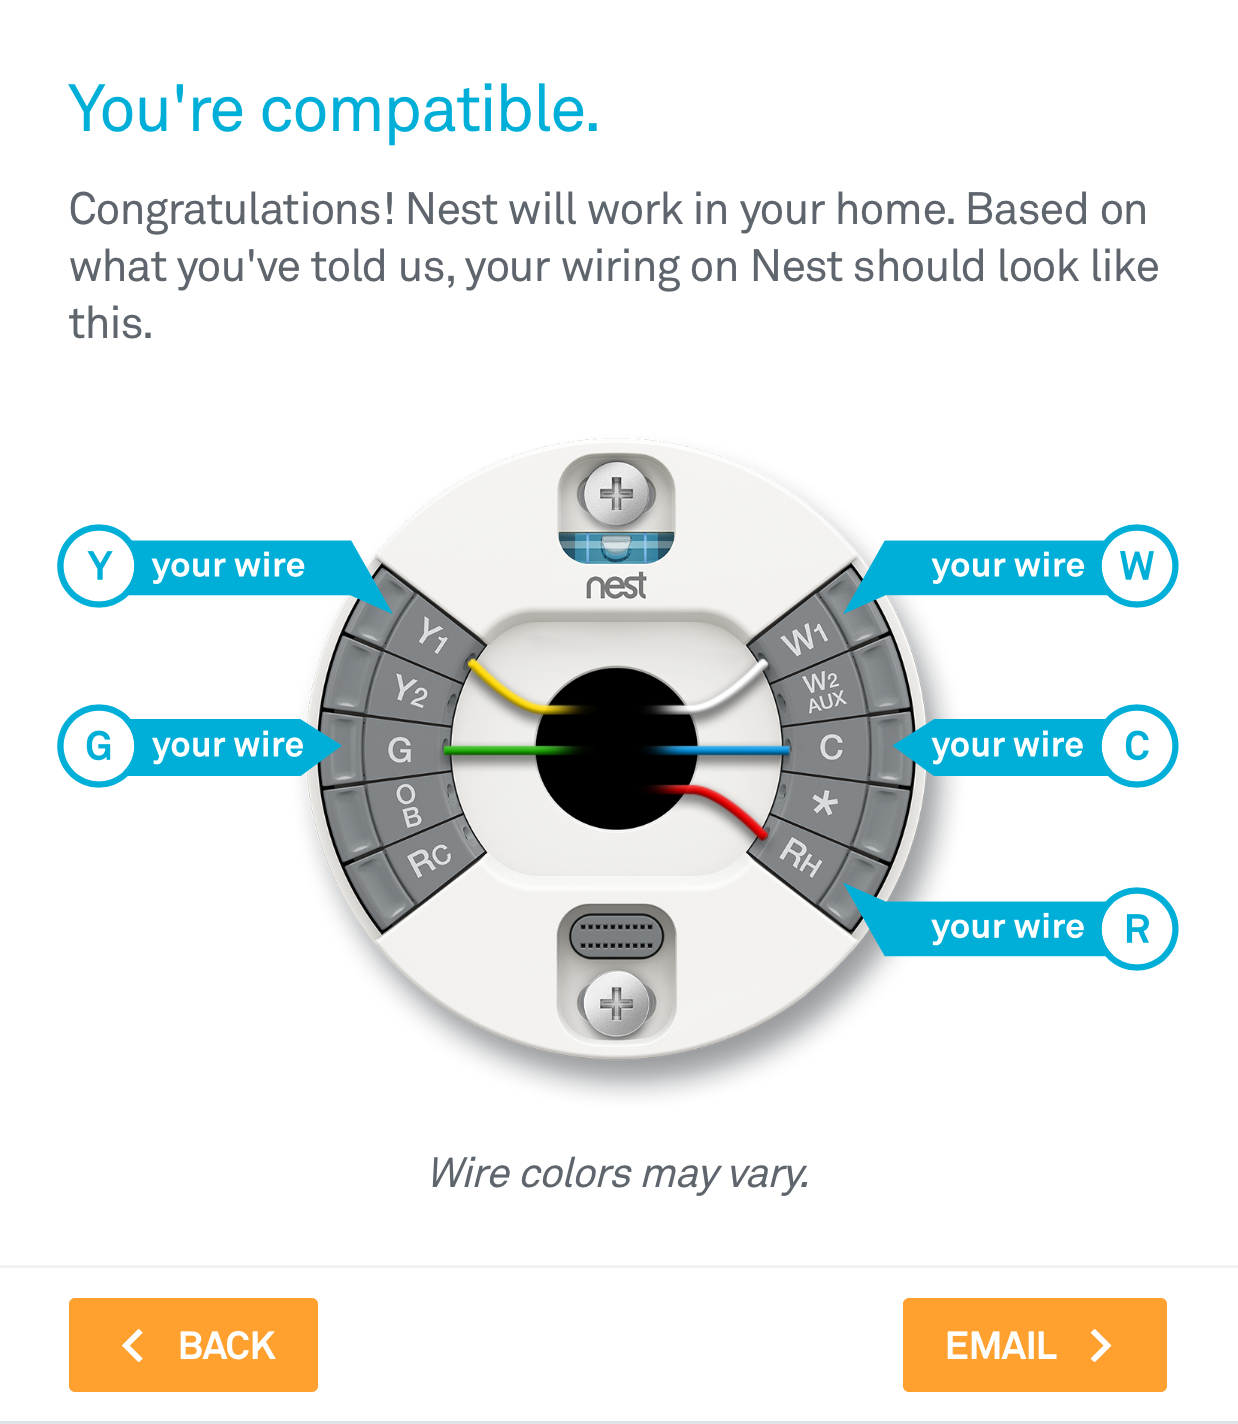 How To: Install The Nest Thermostat | The Craftsman Blog - Nest Thermostat Wiring Diagram No C Wire